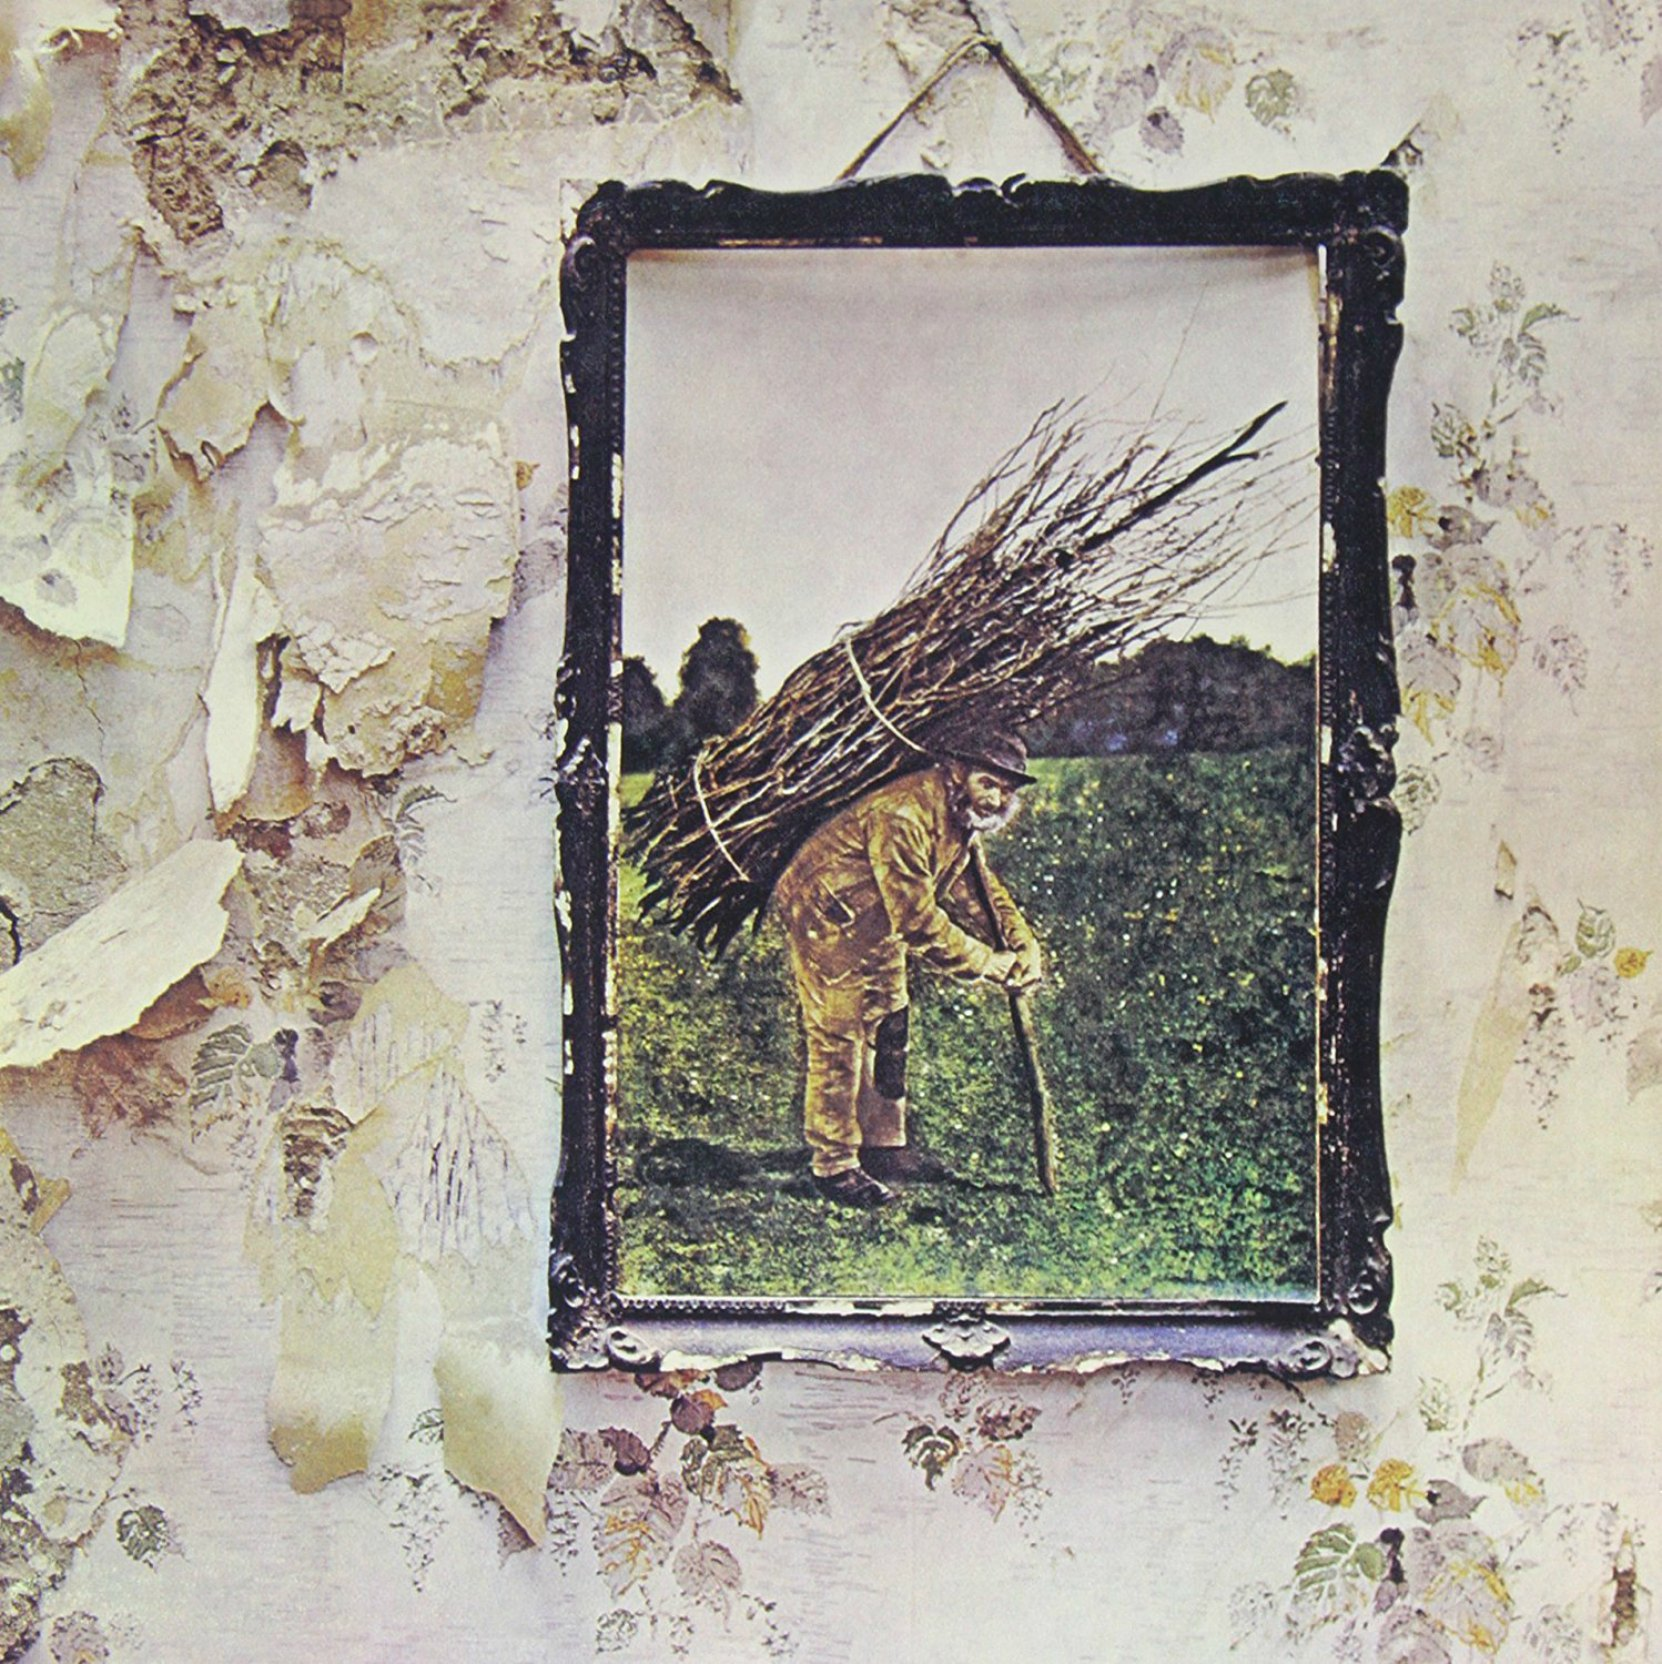 Album cover - Led Zeppelin IV, released 1972